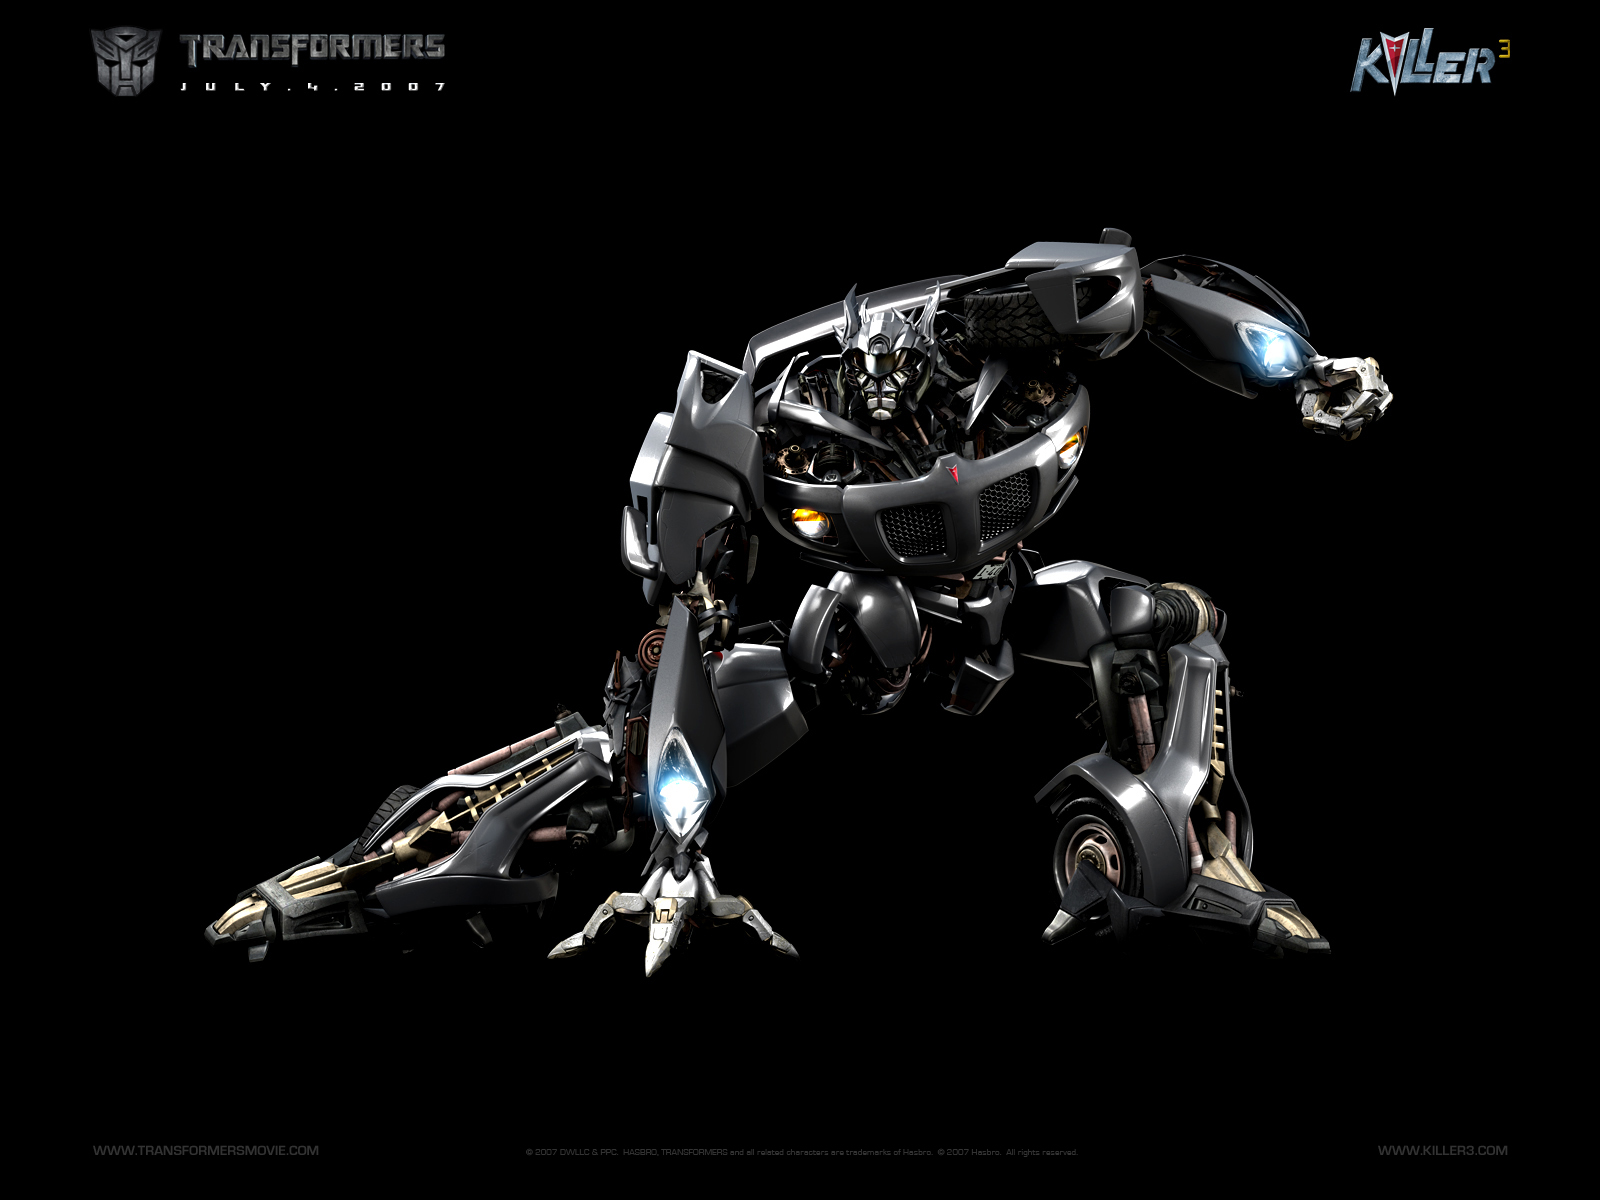 Transformers Ultimate Collection Screensavers Wallpapers Videos 1600x1200